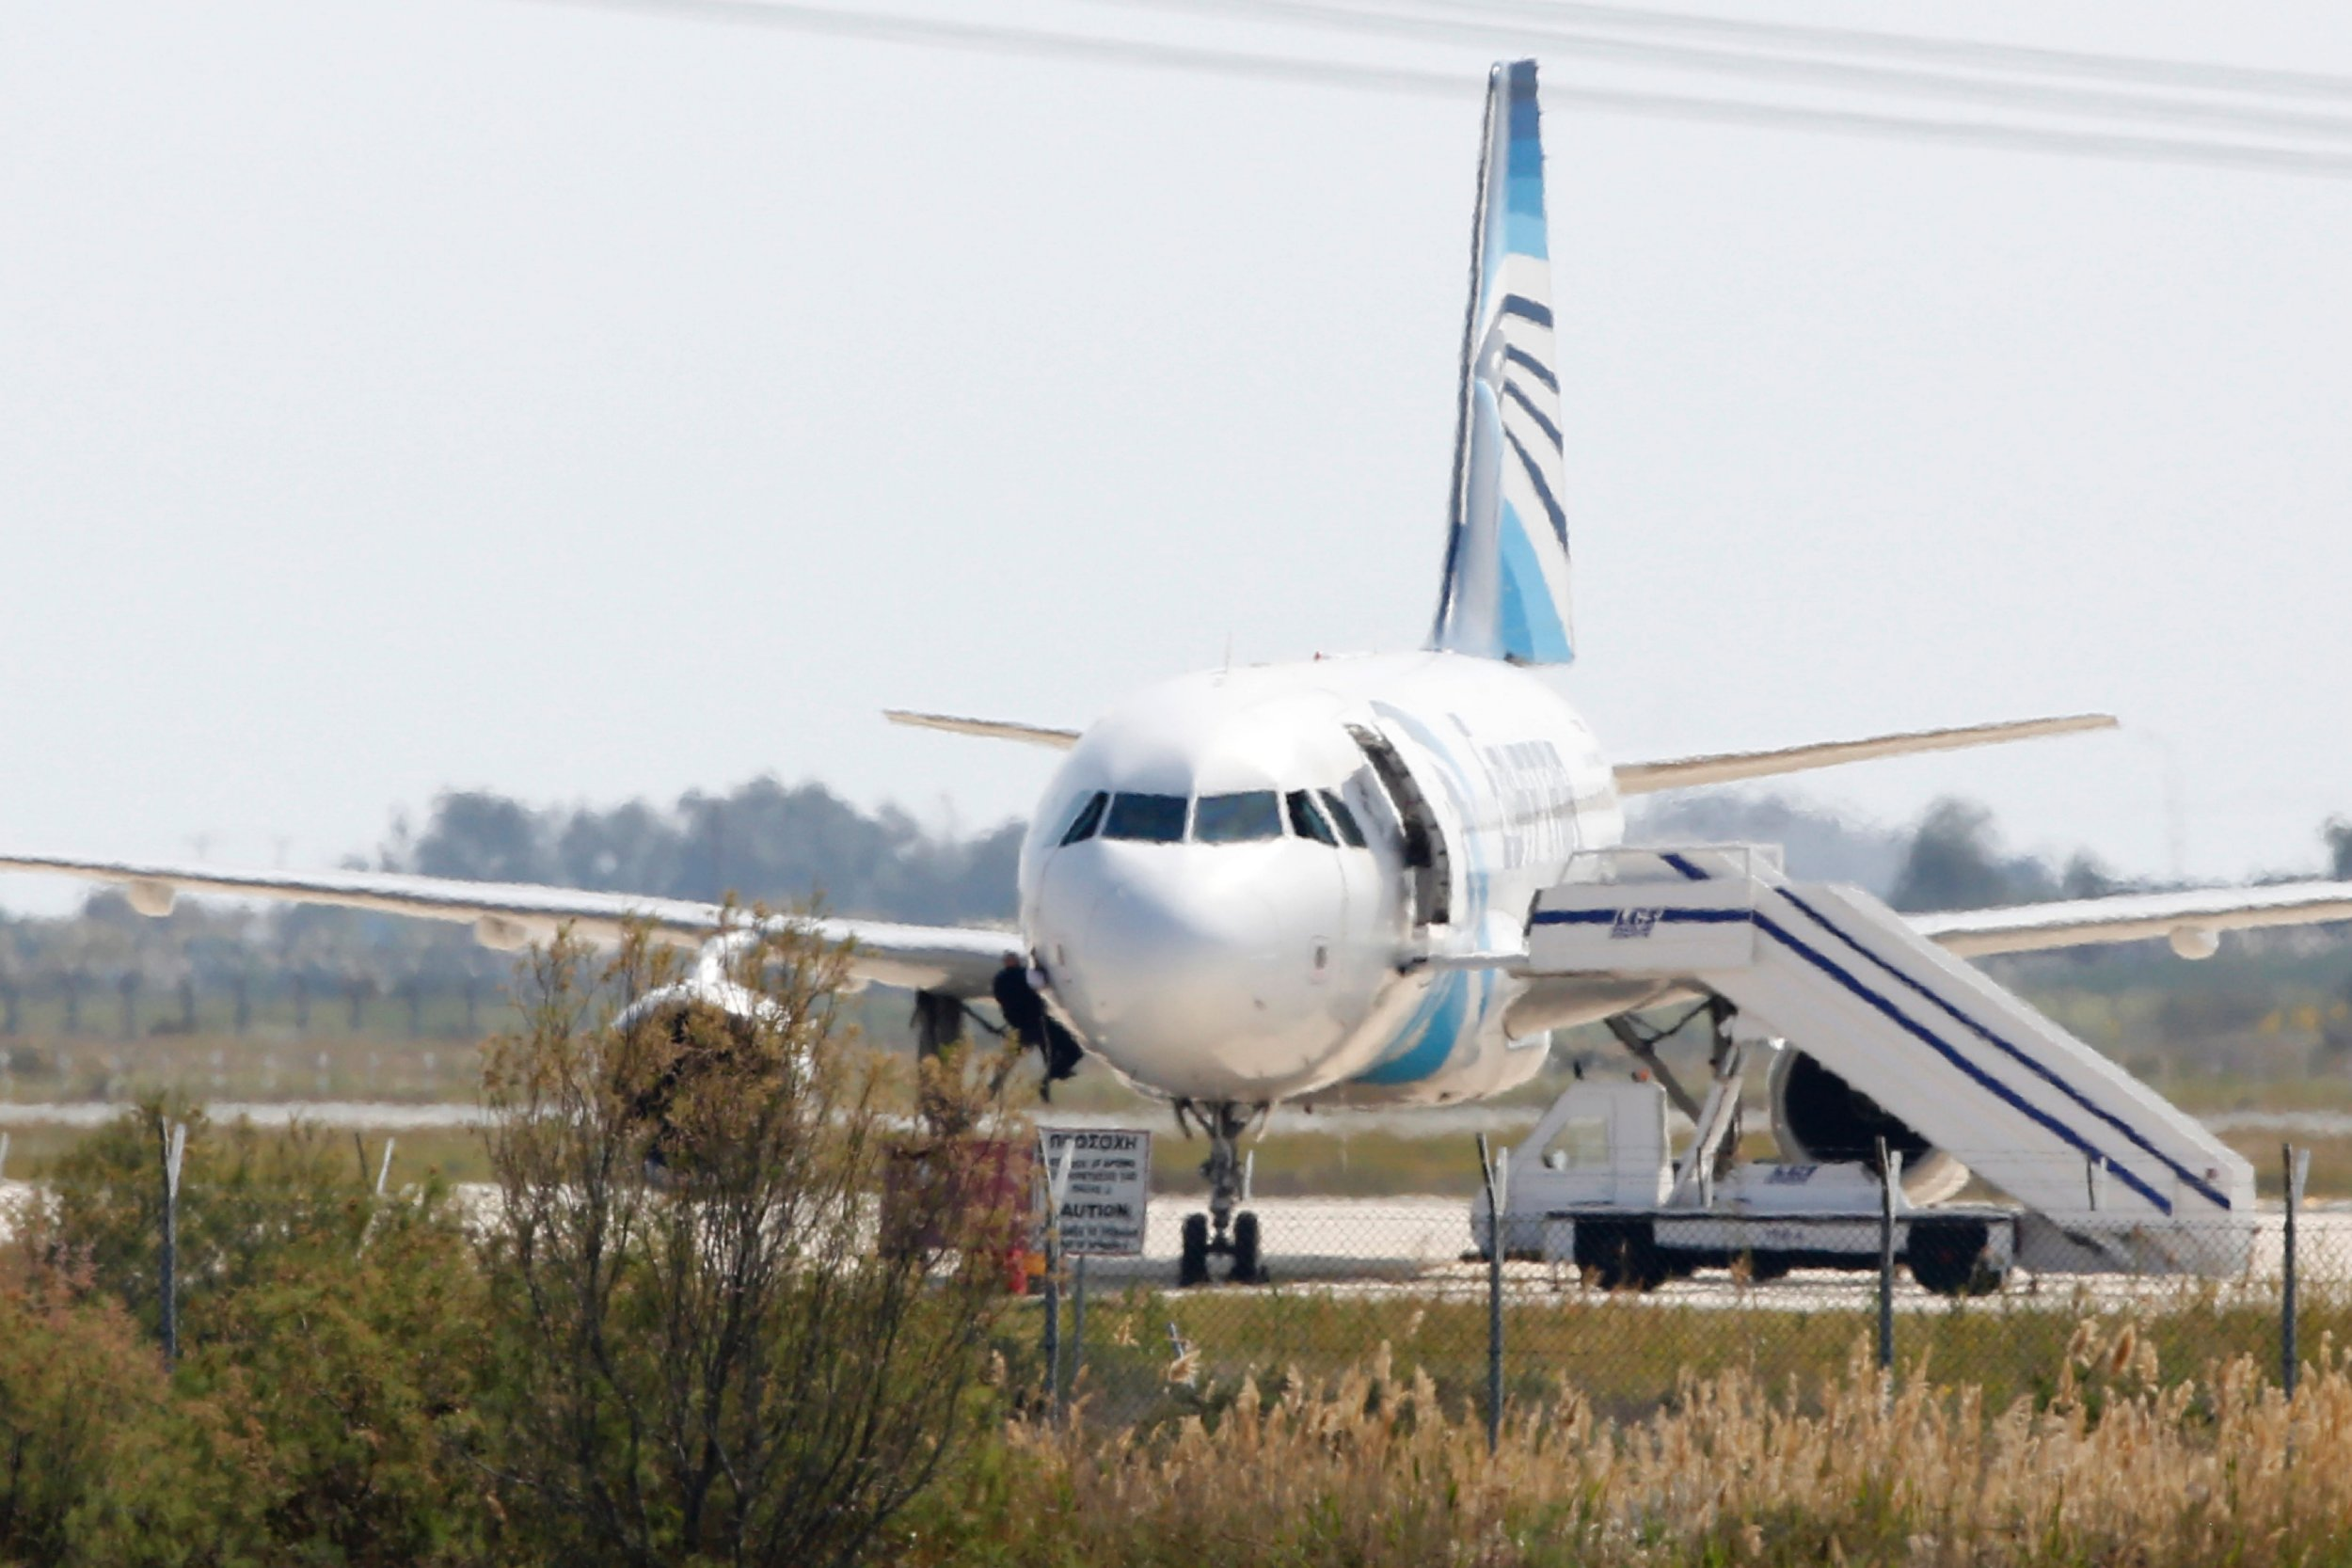 A man climbs out of the cockpit window an EgyptAir Airbus A-320 parked at the tarmac of Larnaca airport after being hijacked and diverted to Cyprus on March 29, 2016. The hijacker who seized the Egyptian airliner and forced it to land in Cyprus has been detained, Cypriot government spokesman Nicos Christodoulides said. / AFP PHOTO / BEHROUZ MEHRIBEHROUZ MEHRI/AFP/Getty Images